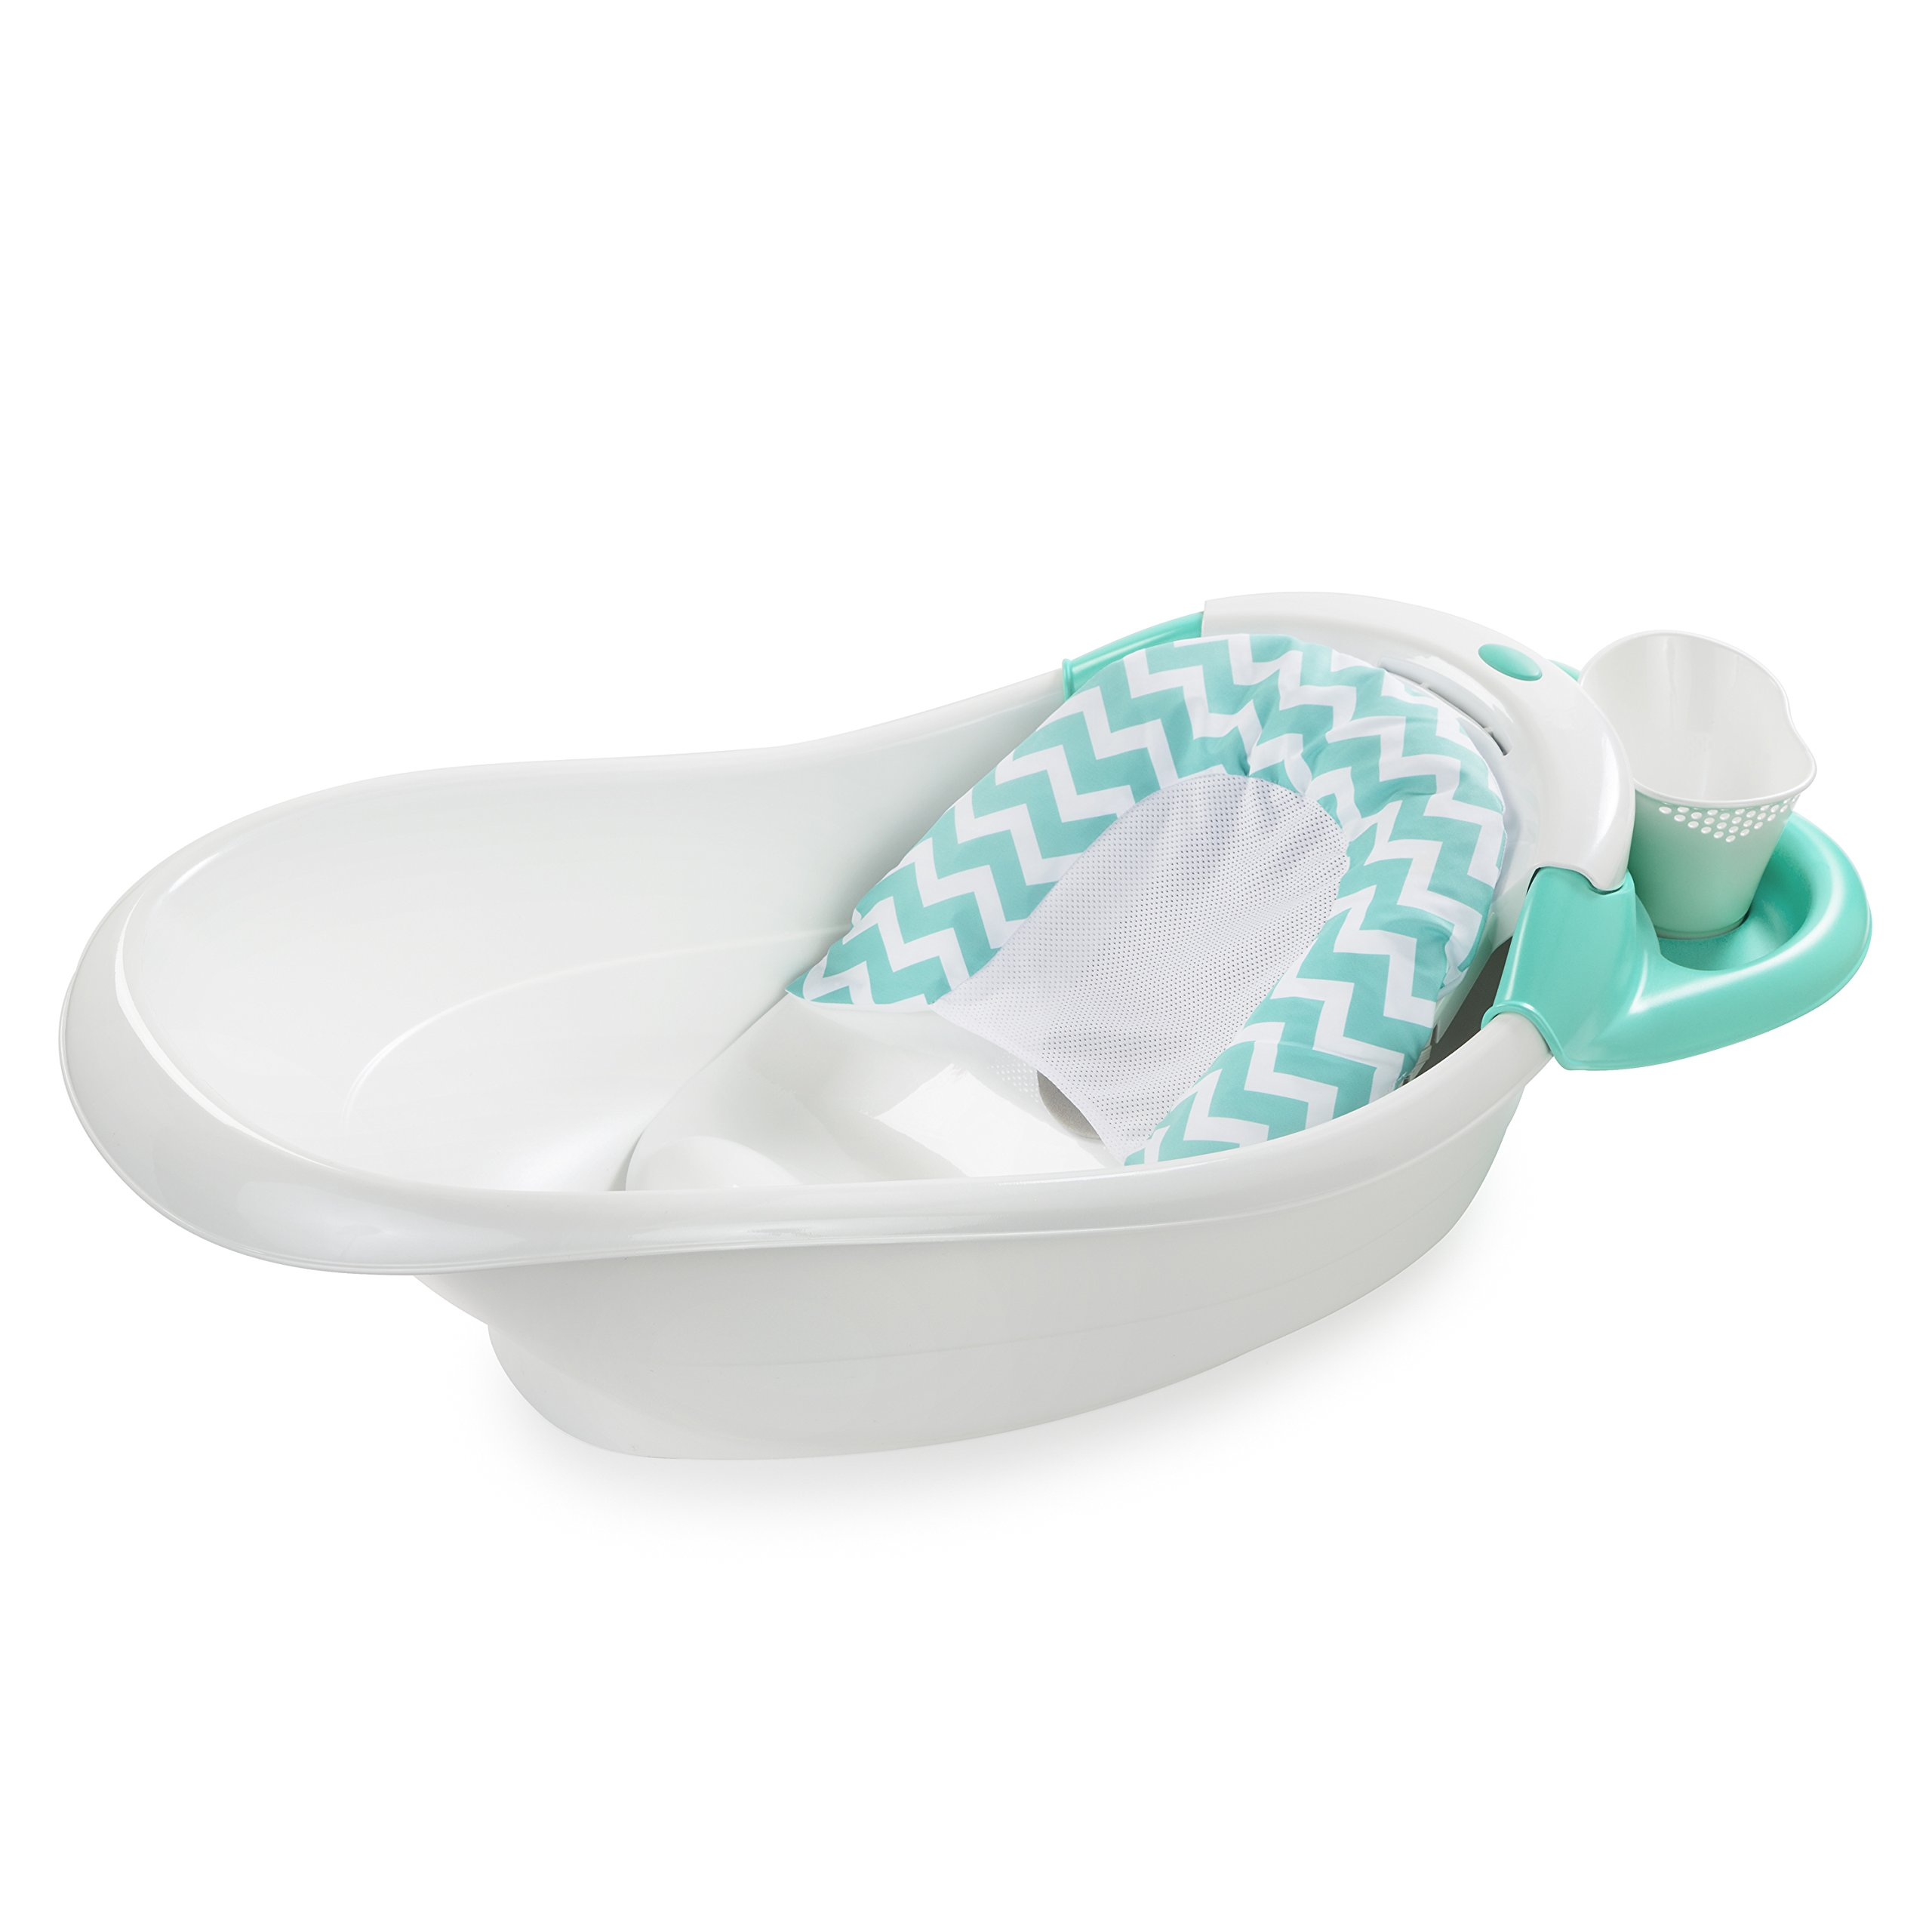 Cheap Summer Baby Tub, find Summer Baby Tub deals on line at Alibaba.com